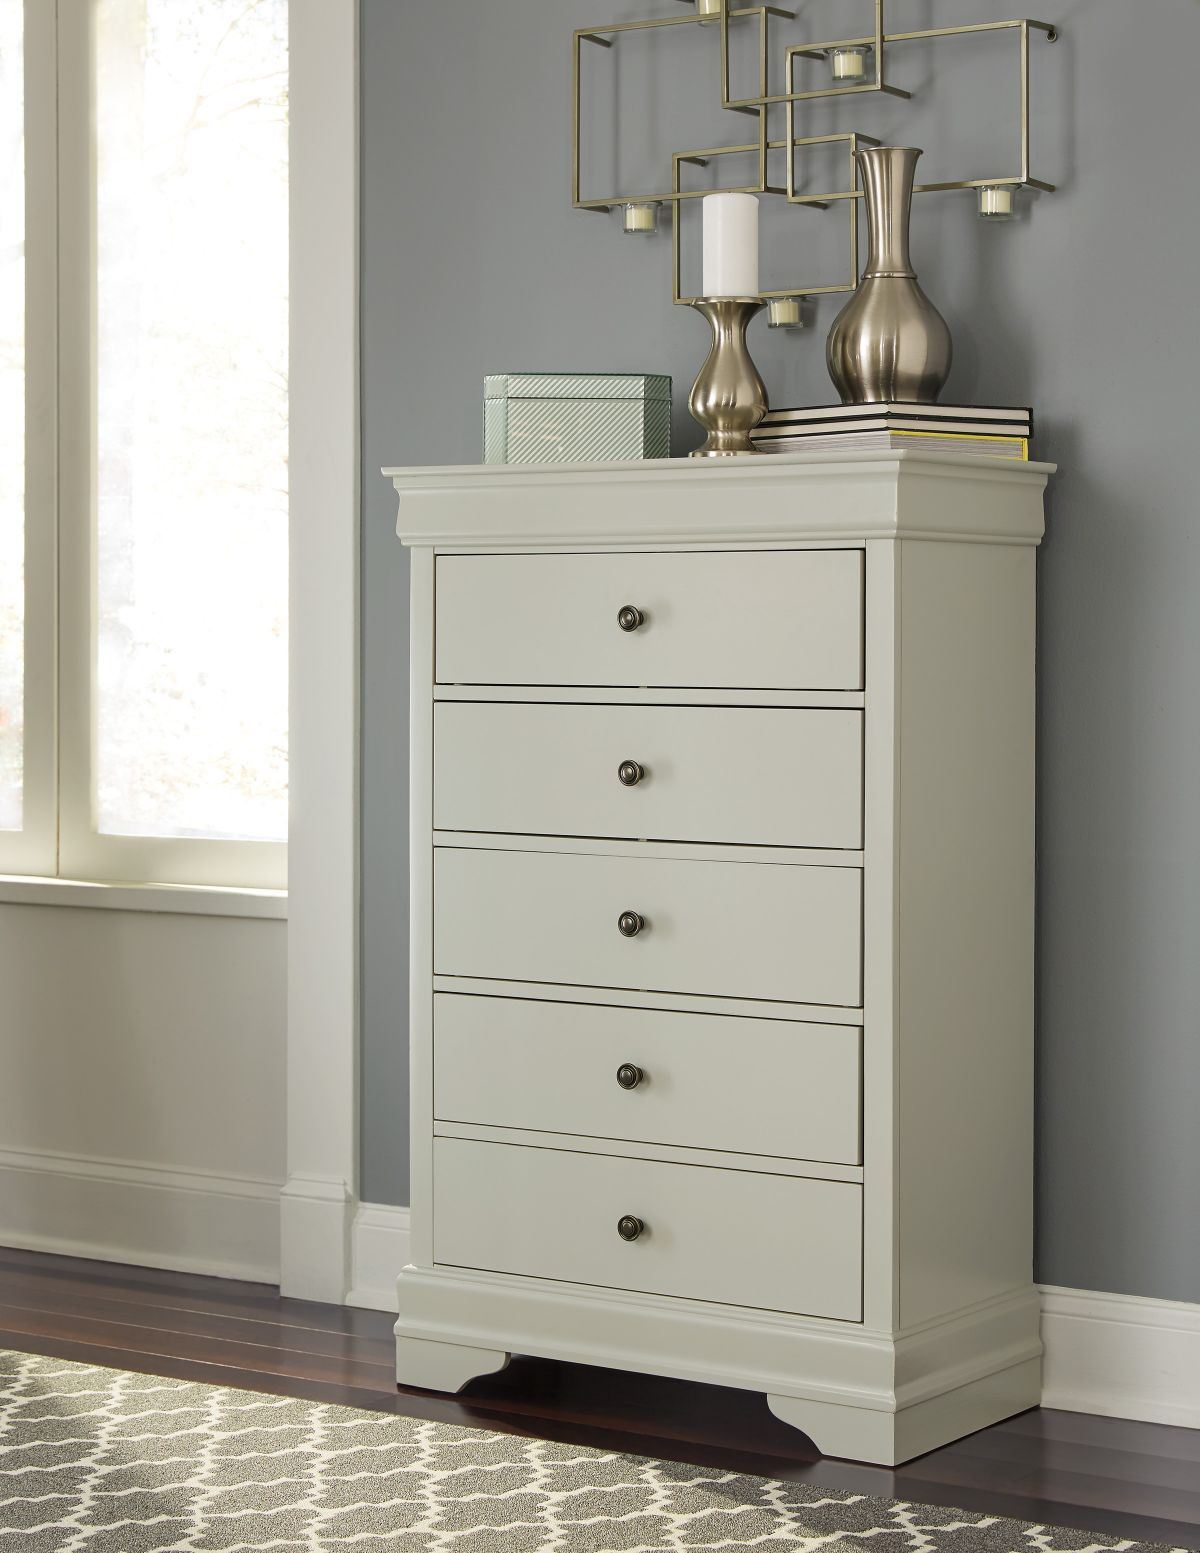 Picture of Jorstad Chest of Drawers